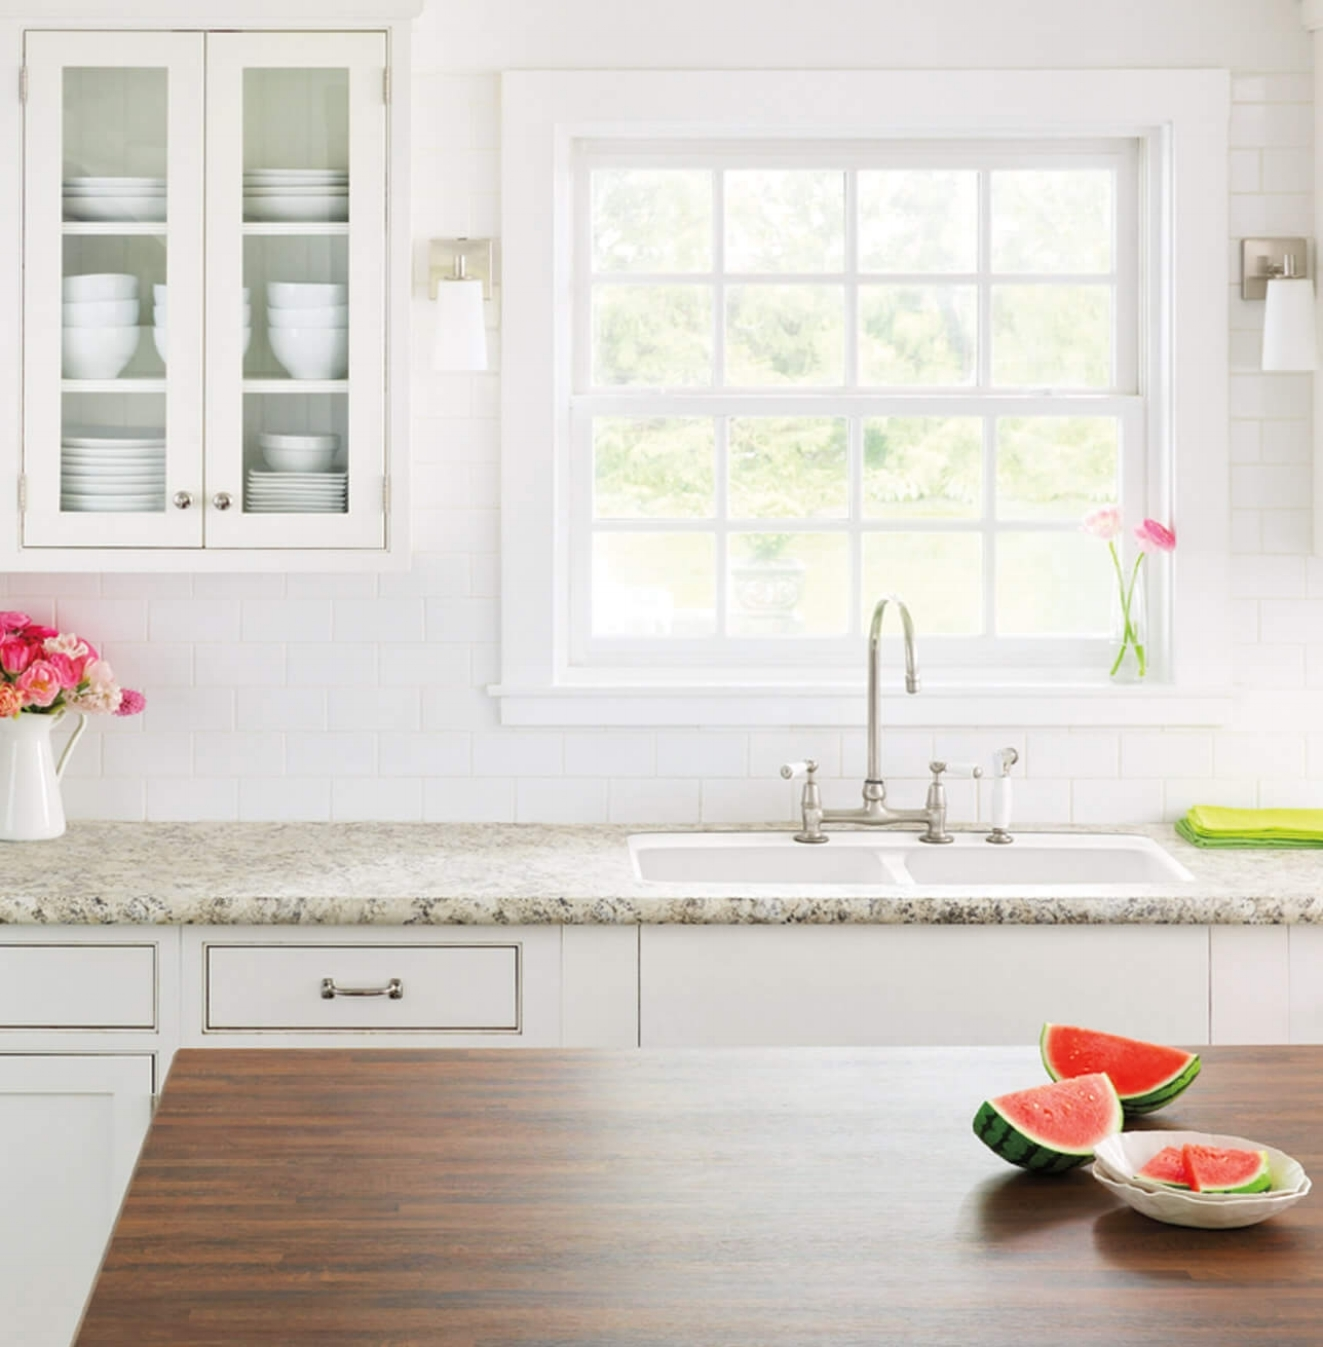 The Kitchen Remodel Countertop Advice You Should Never Take Nicole Janes Design